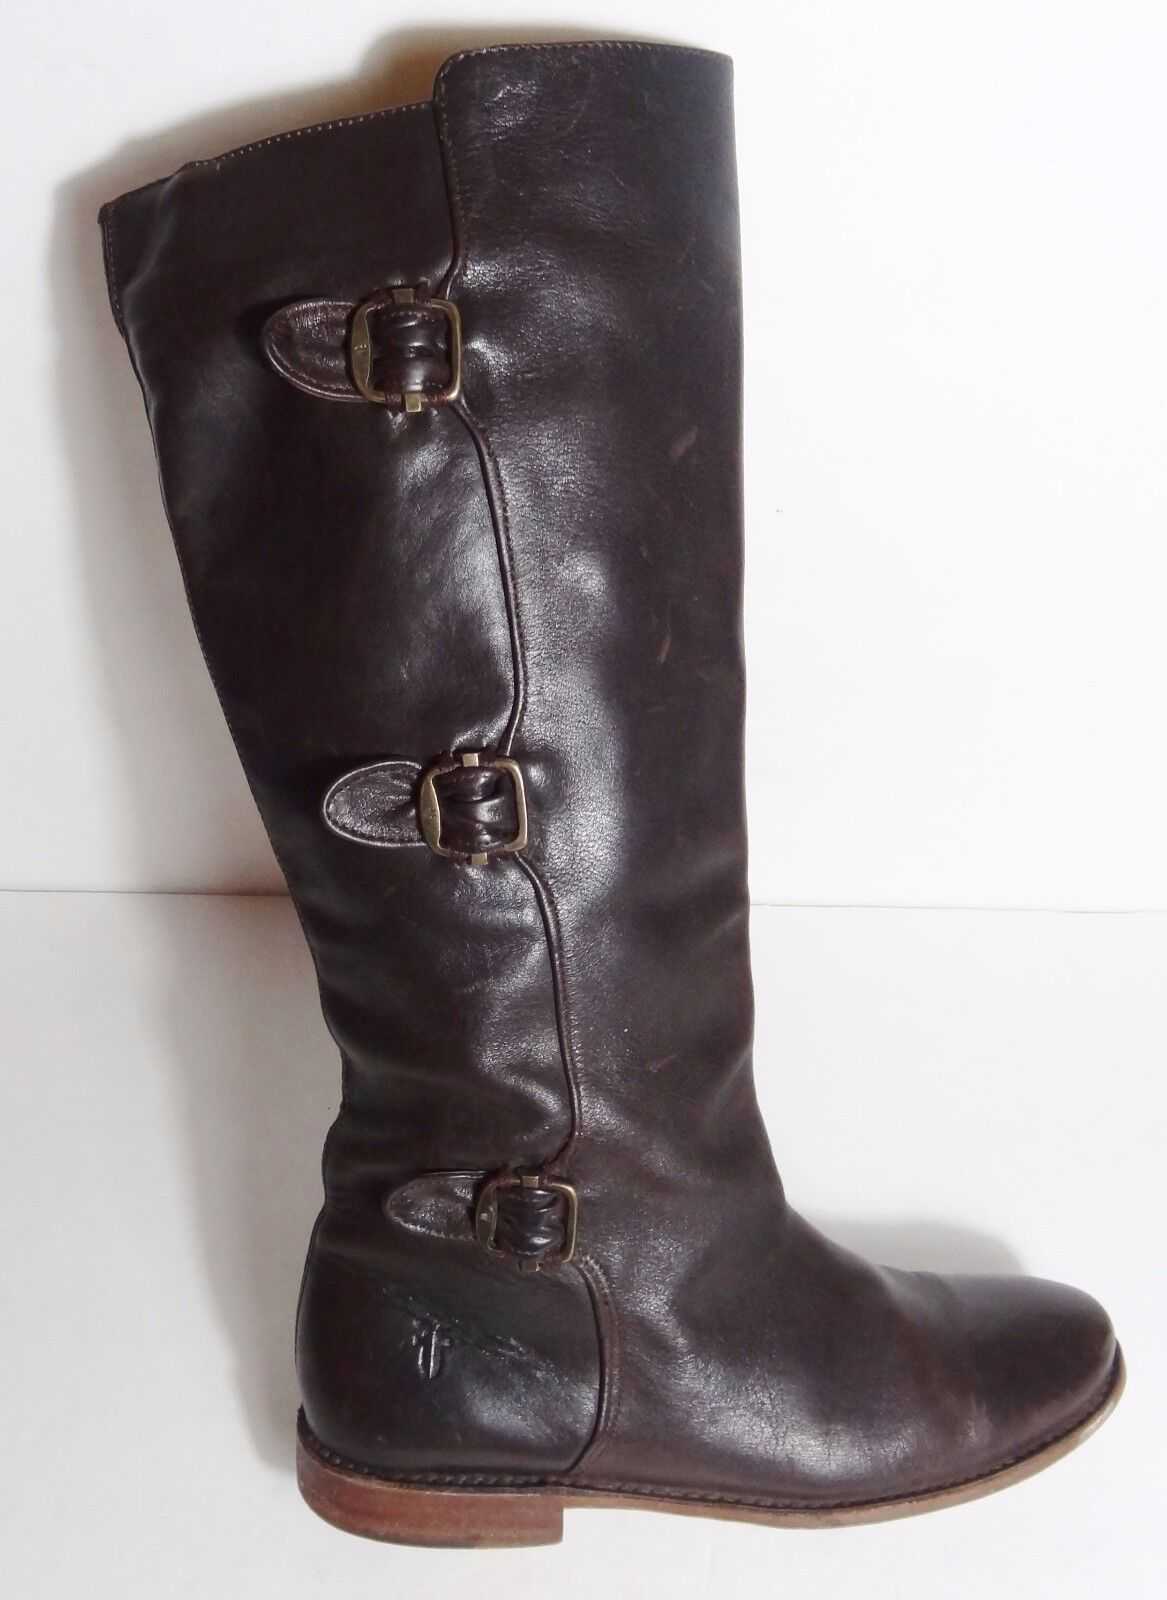 350 Frye damen buckle horse braun Antique Pull Up Paige Tall Riding Stiefel 7.5